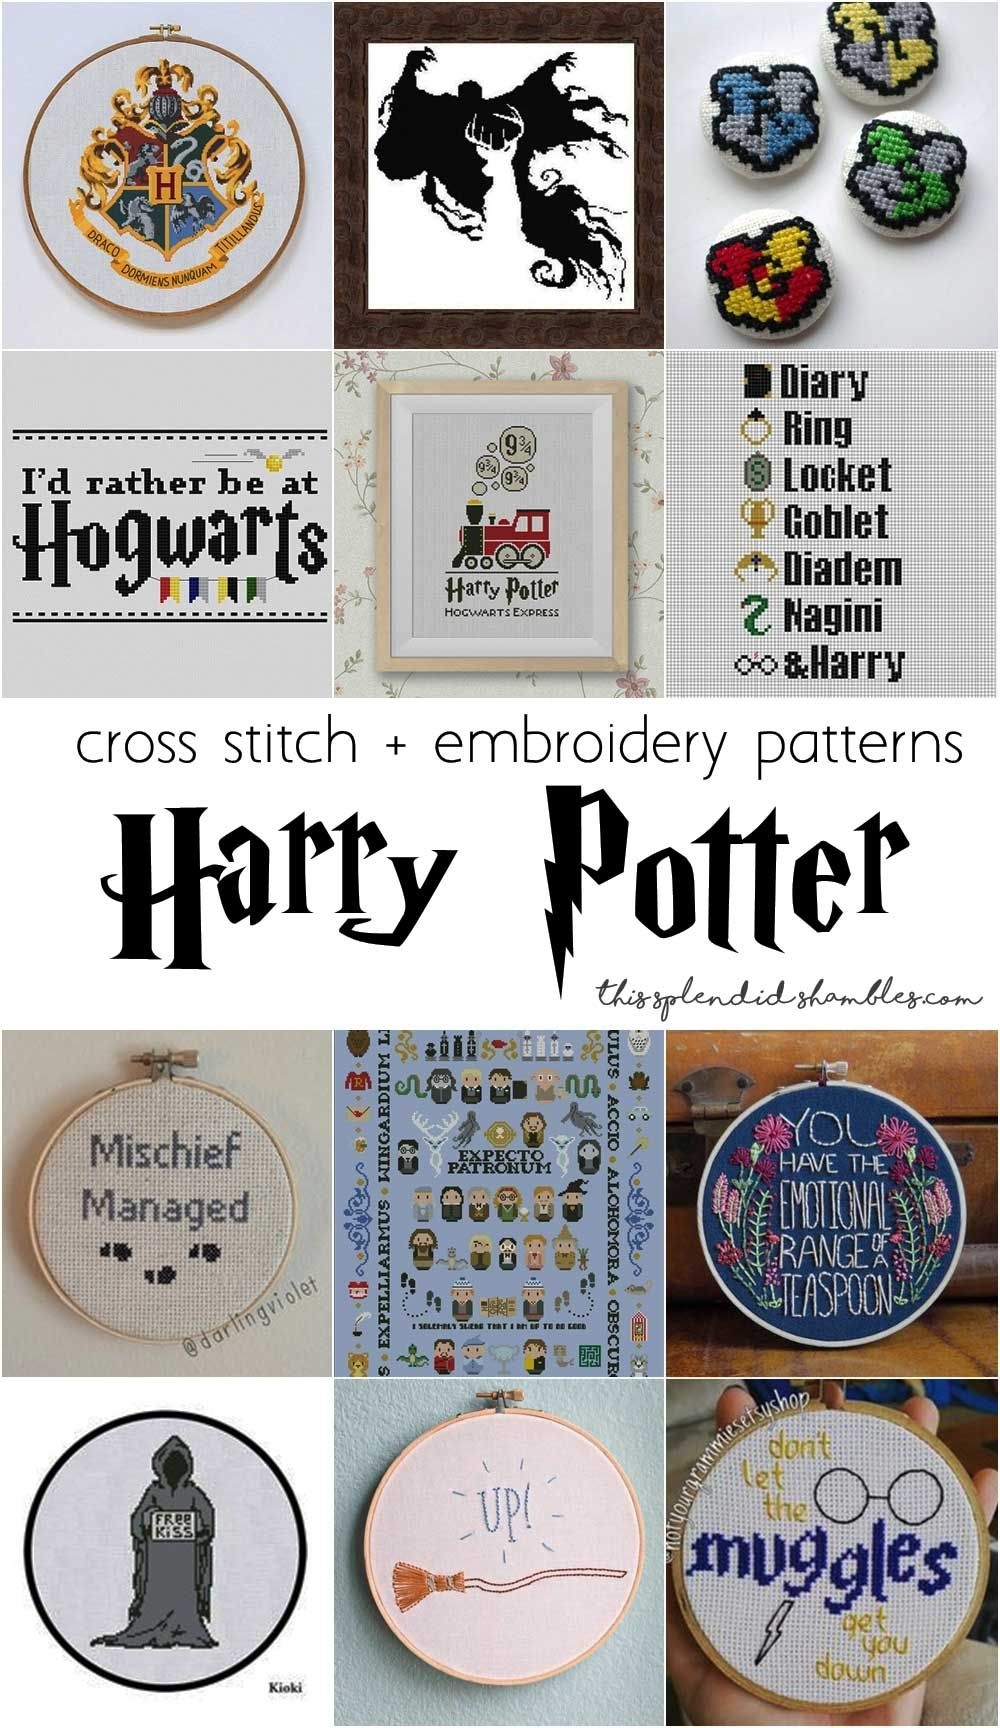 Admirable 44 Harry Potter Cross Stitch Charts Free Harry Potter Cross Stitch Pattern Disney Cross Stitch Patterns Cross Stitch Bookmarks